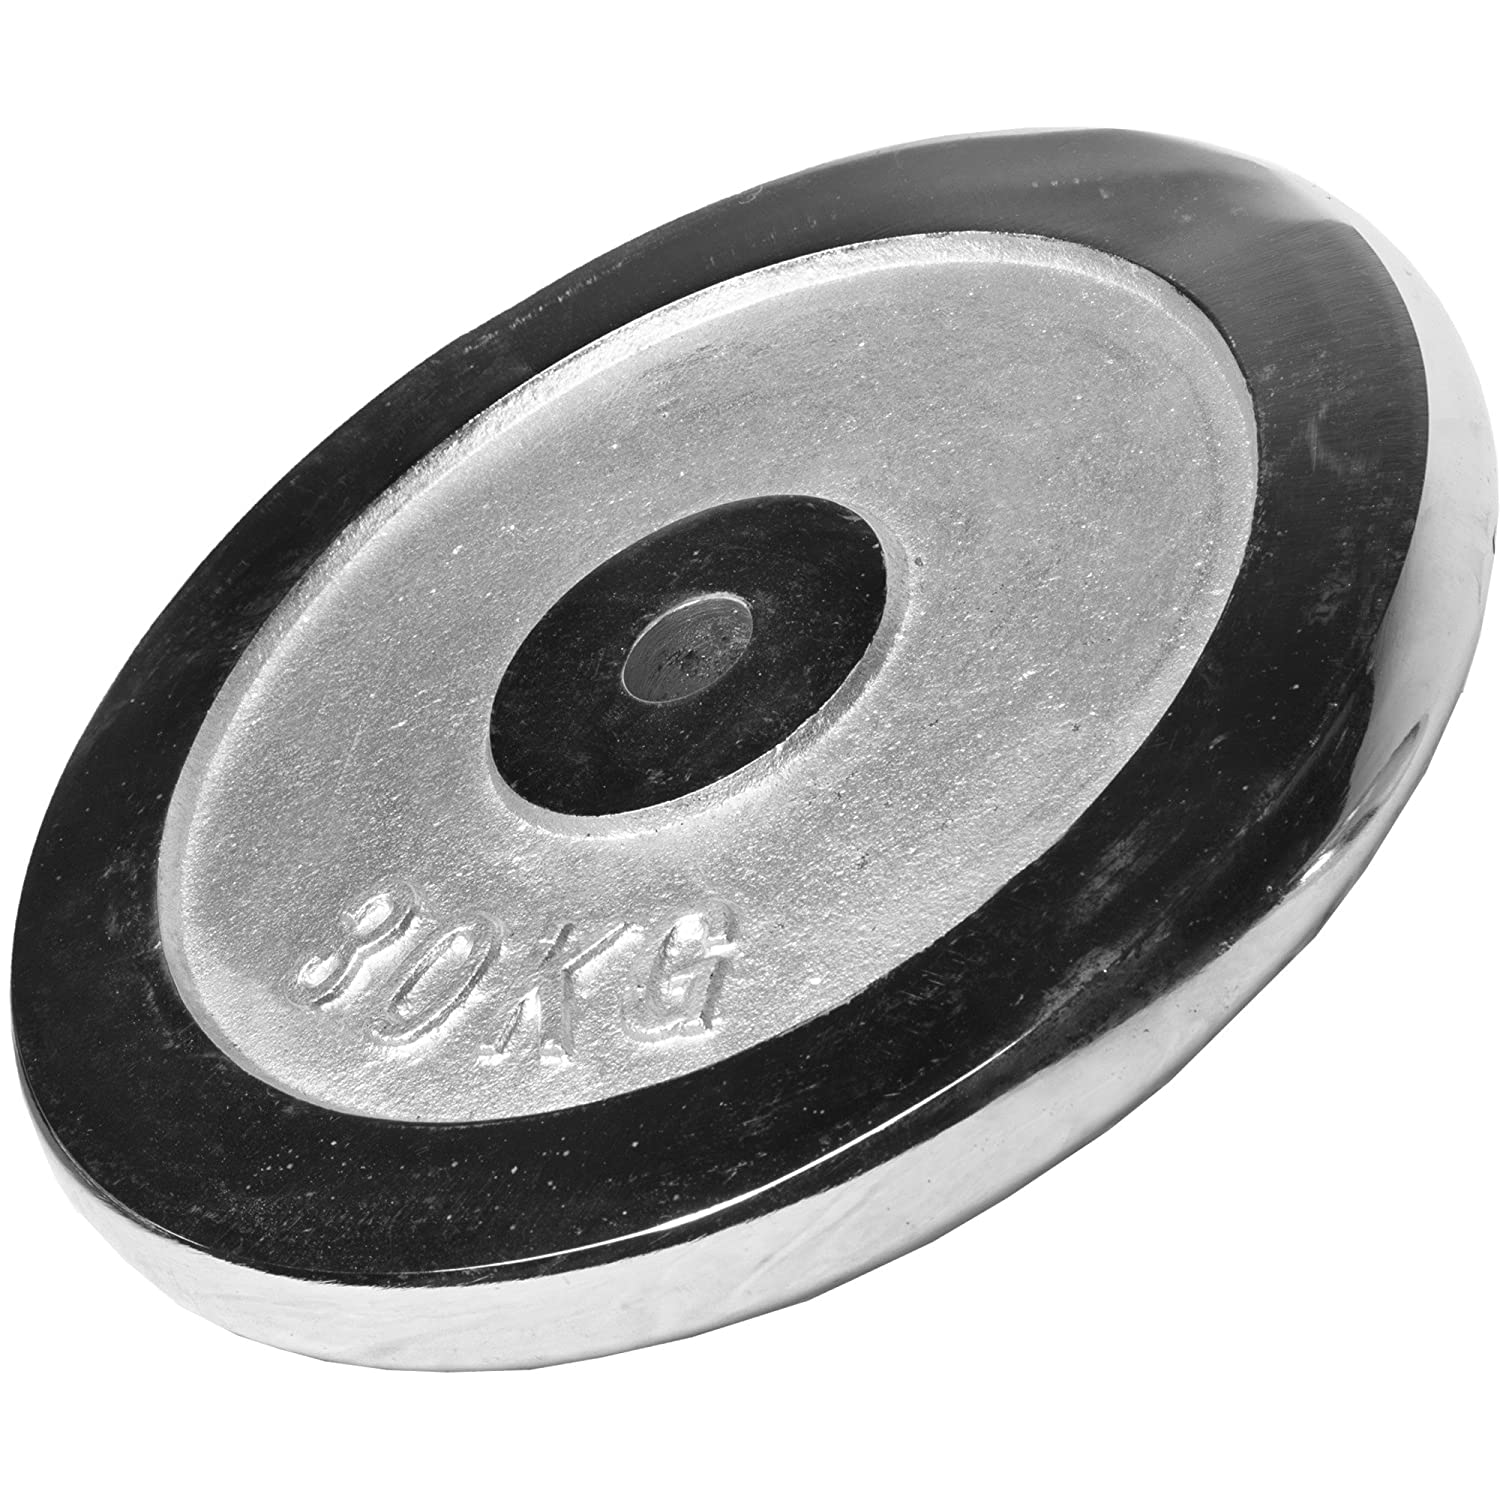 Gorilla Sports Chrome Weight Plate 0.5KG - 30KG